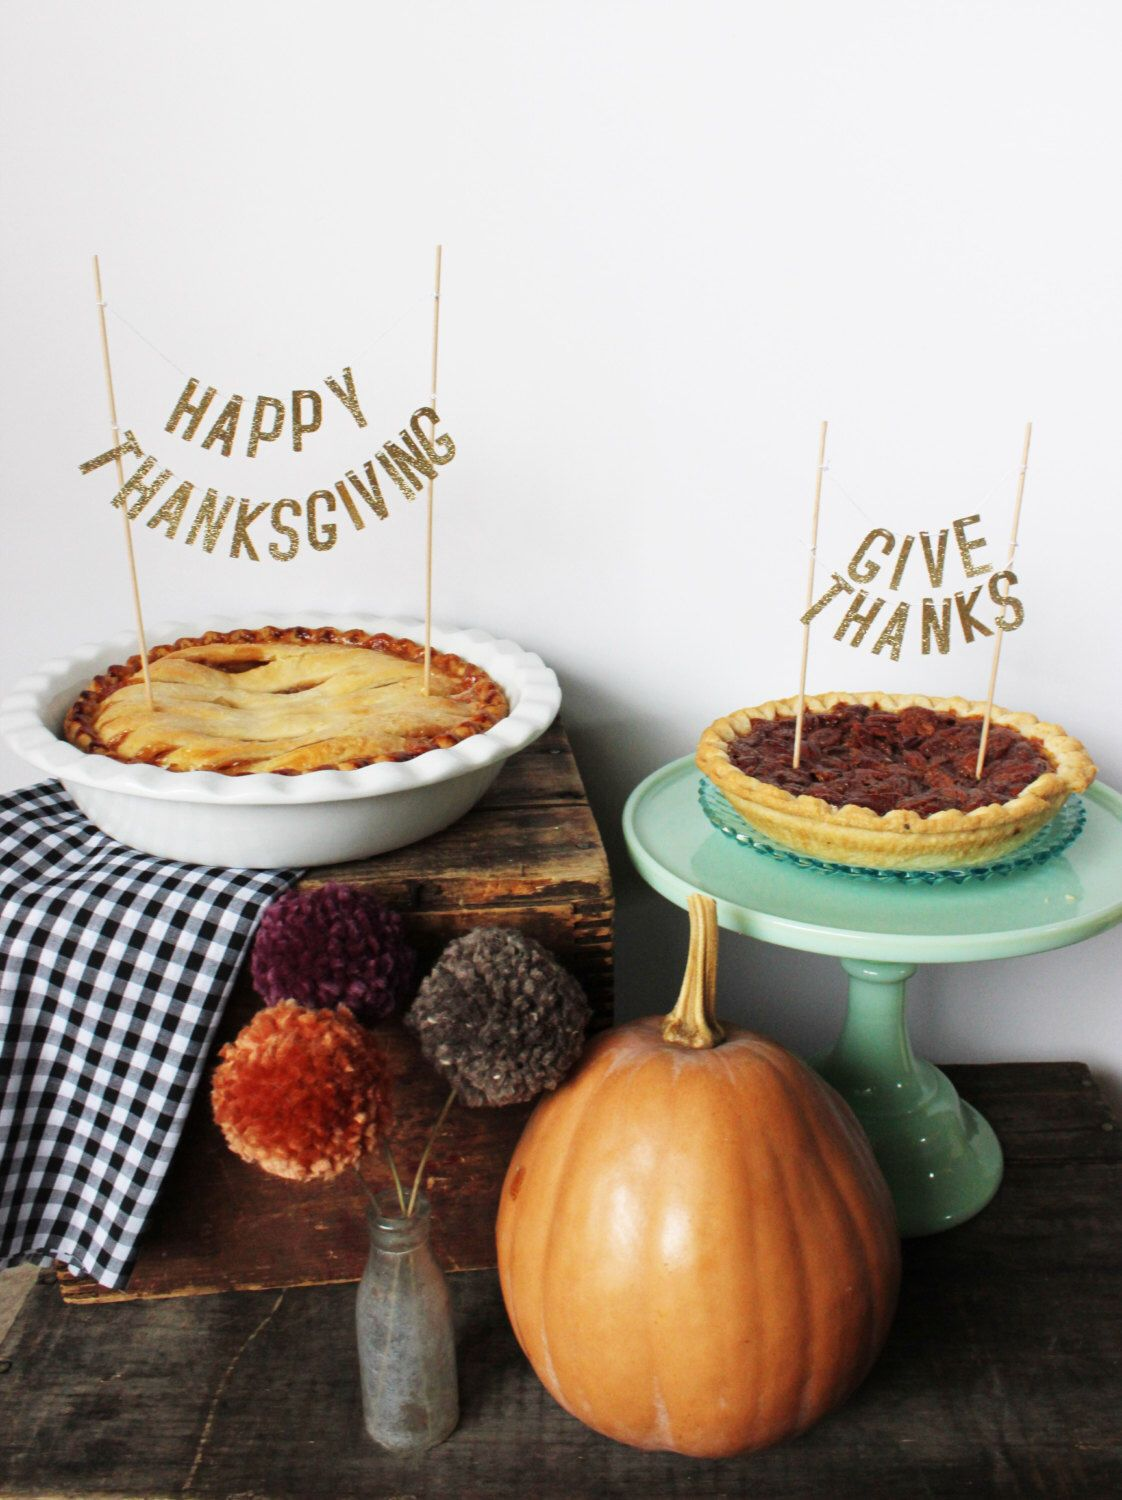 Thanksgiving Pie Topper by stephlovesben on Etsy https://www.etsy.com/listing/253068455/thanksgiving-pie-topper